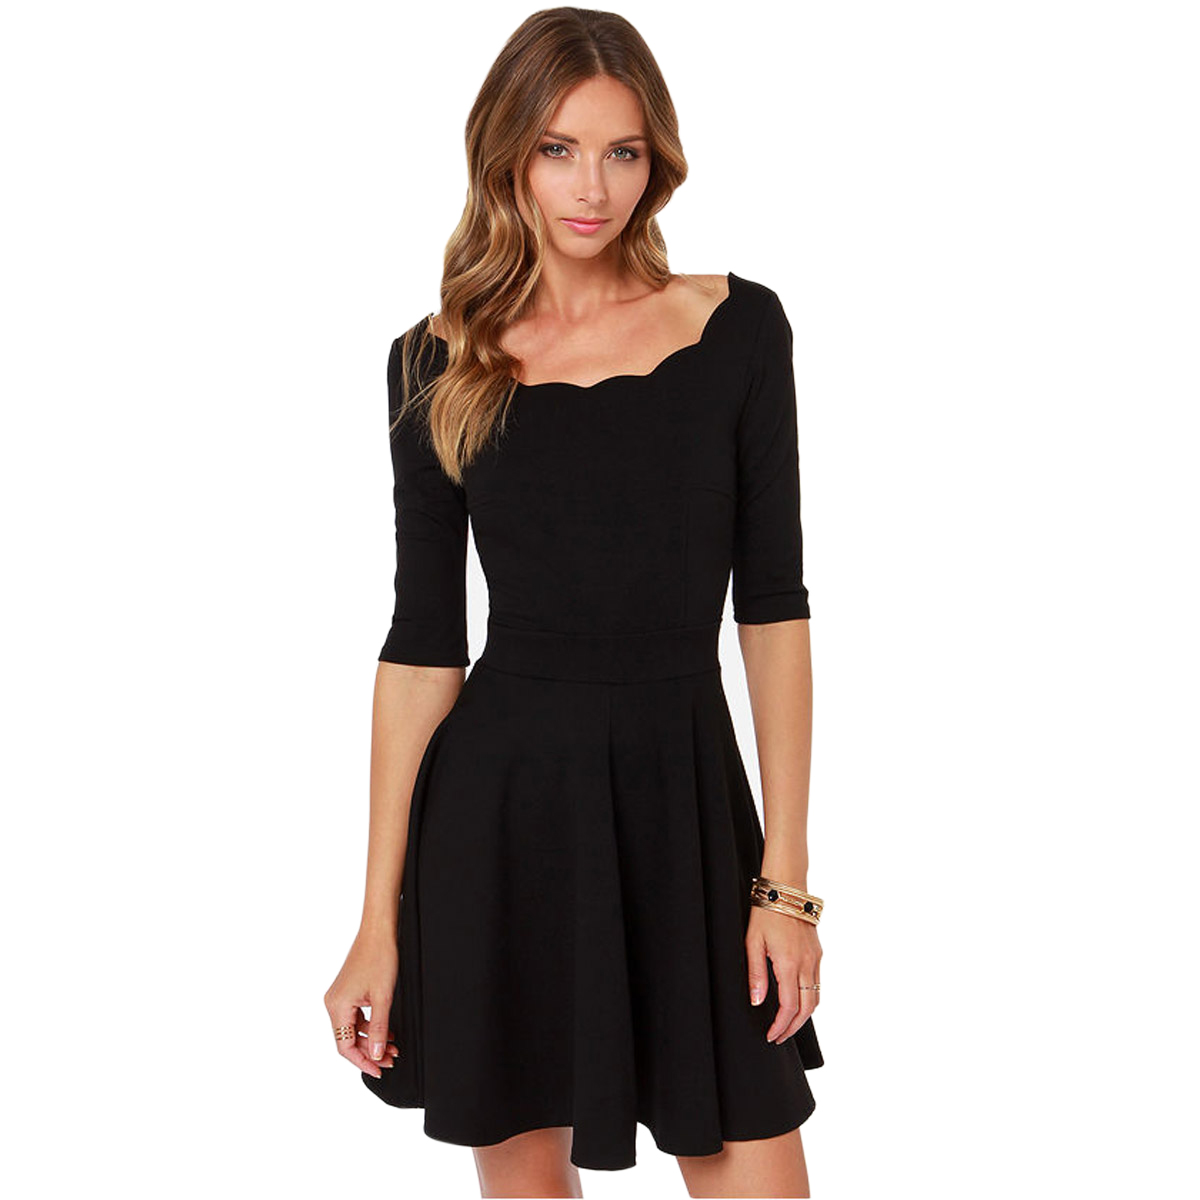 Little Black Dress Shopping